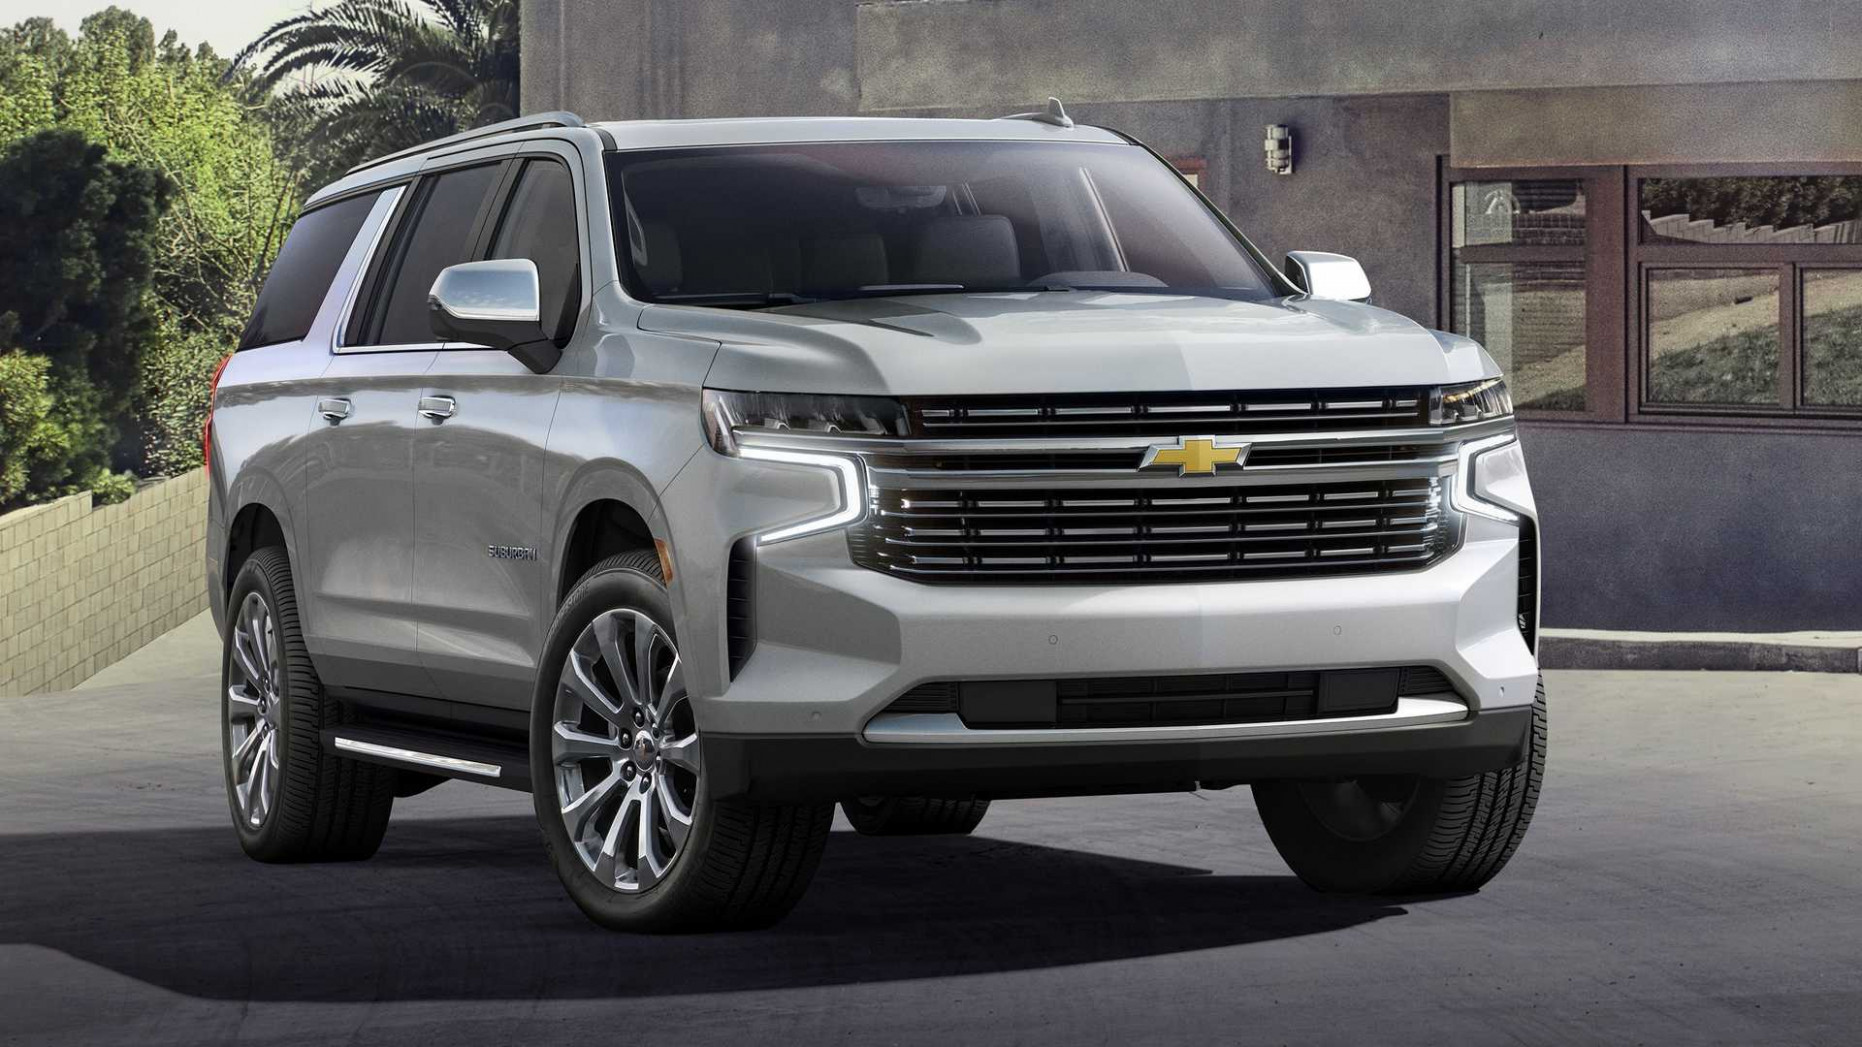 11 Chevy Suburban Starts $11,11, High Country Begins At $11,11 - 2020 chevrolet suburban xlt